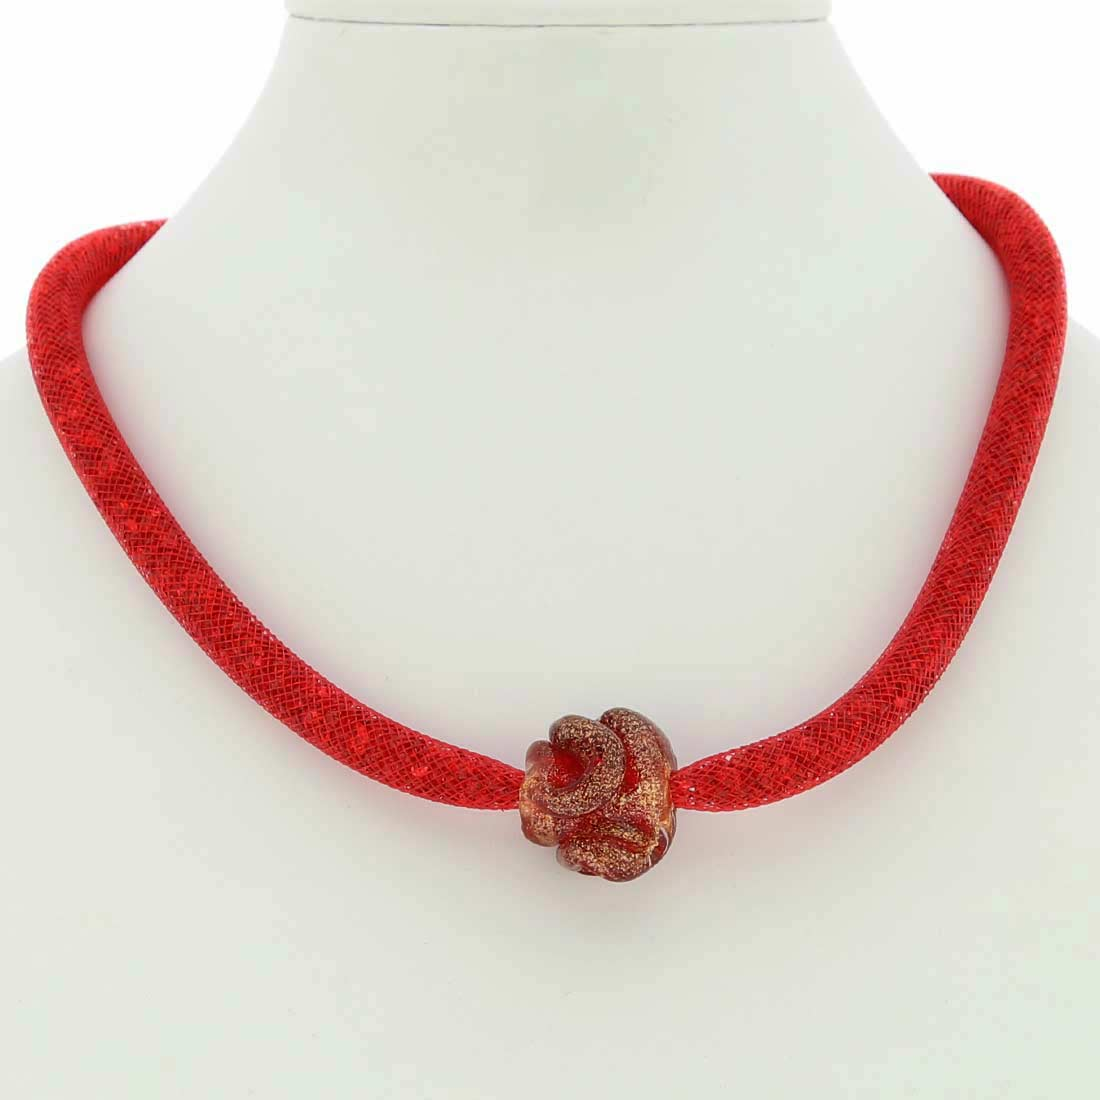 Murano Rose Flower Necklace - Red